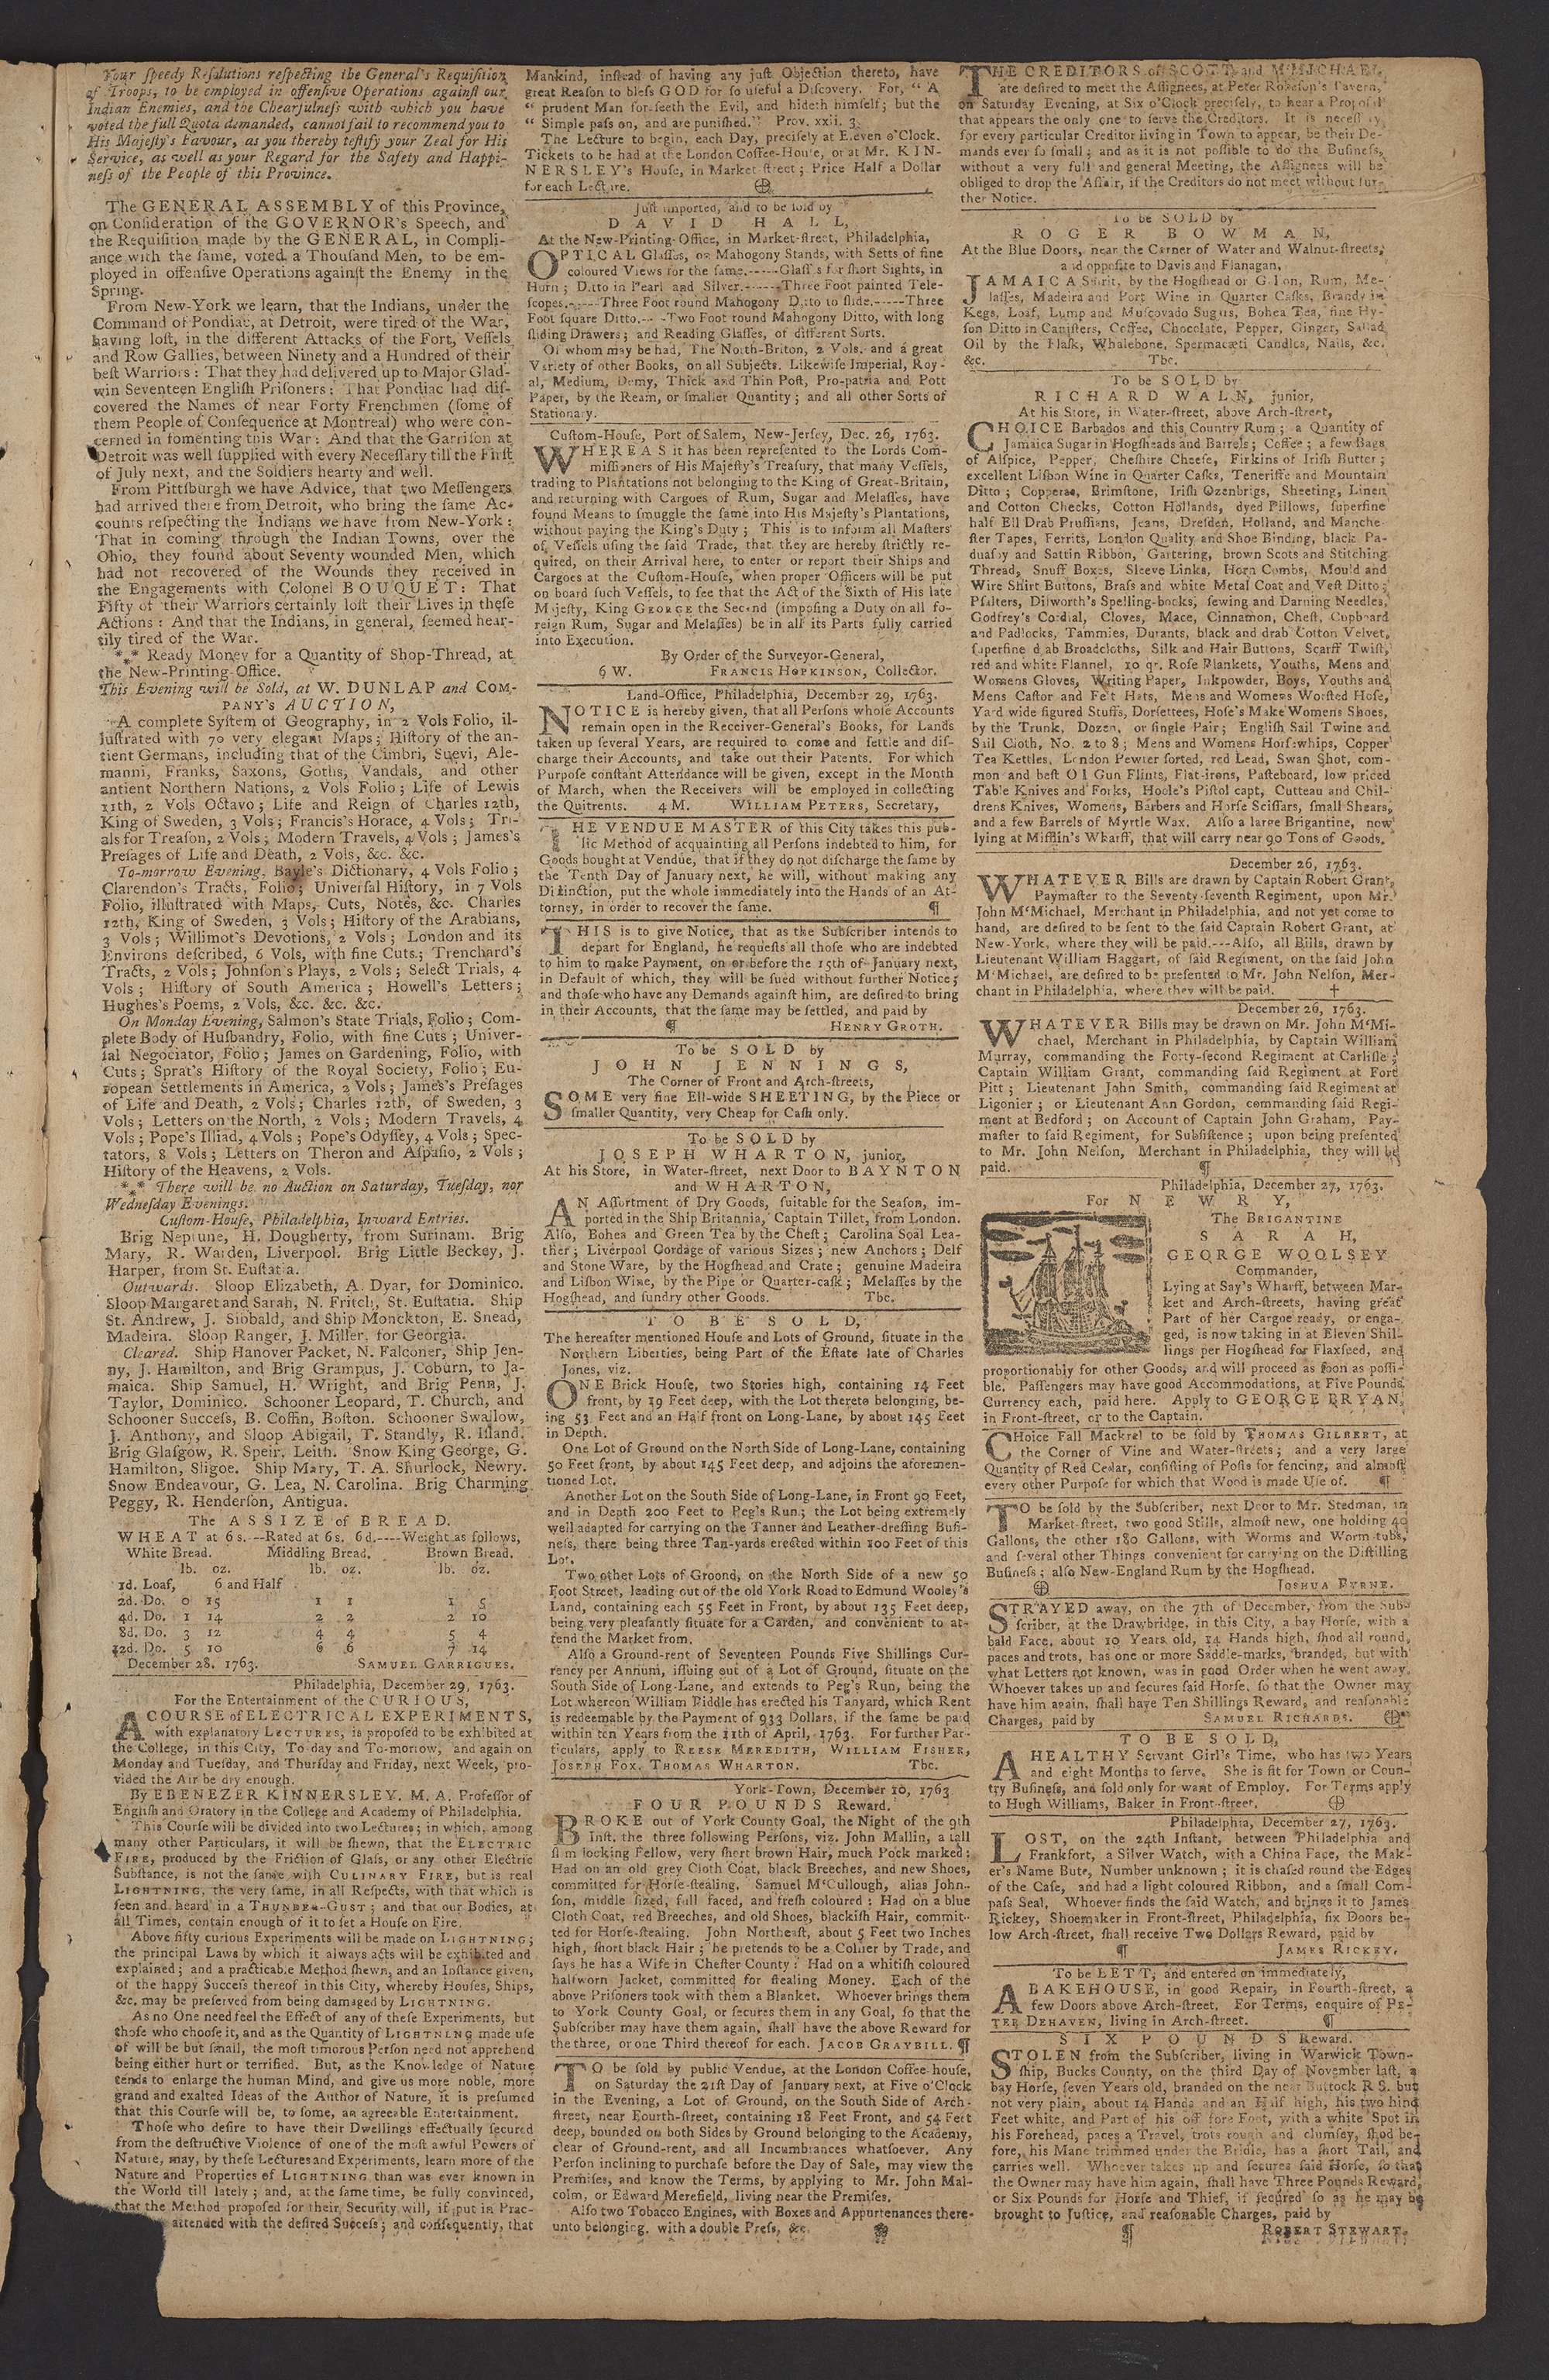 The Pennsylvania Gazette, December 29, 1763 - 2